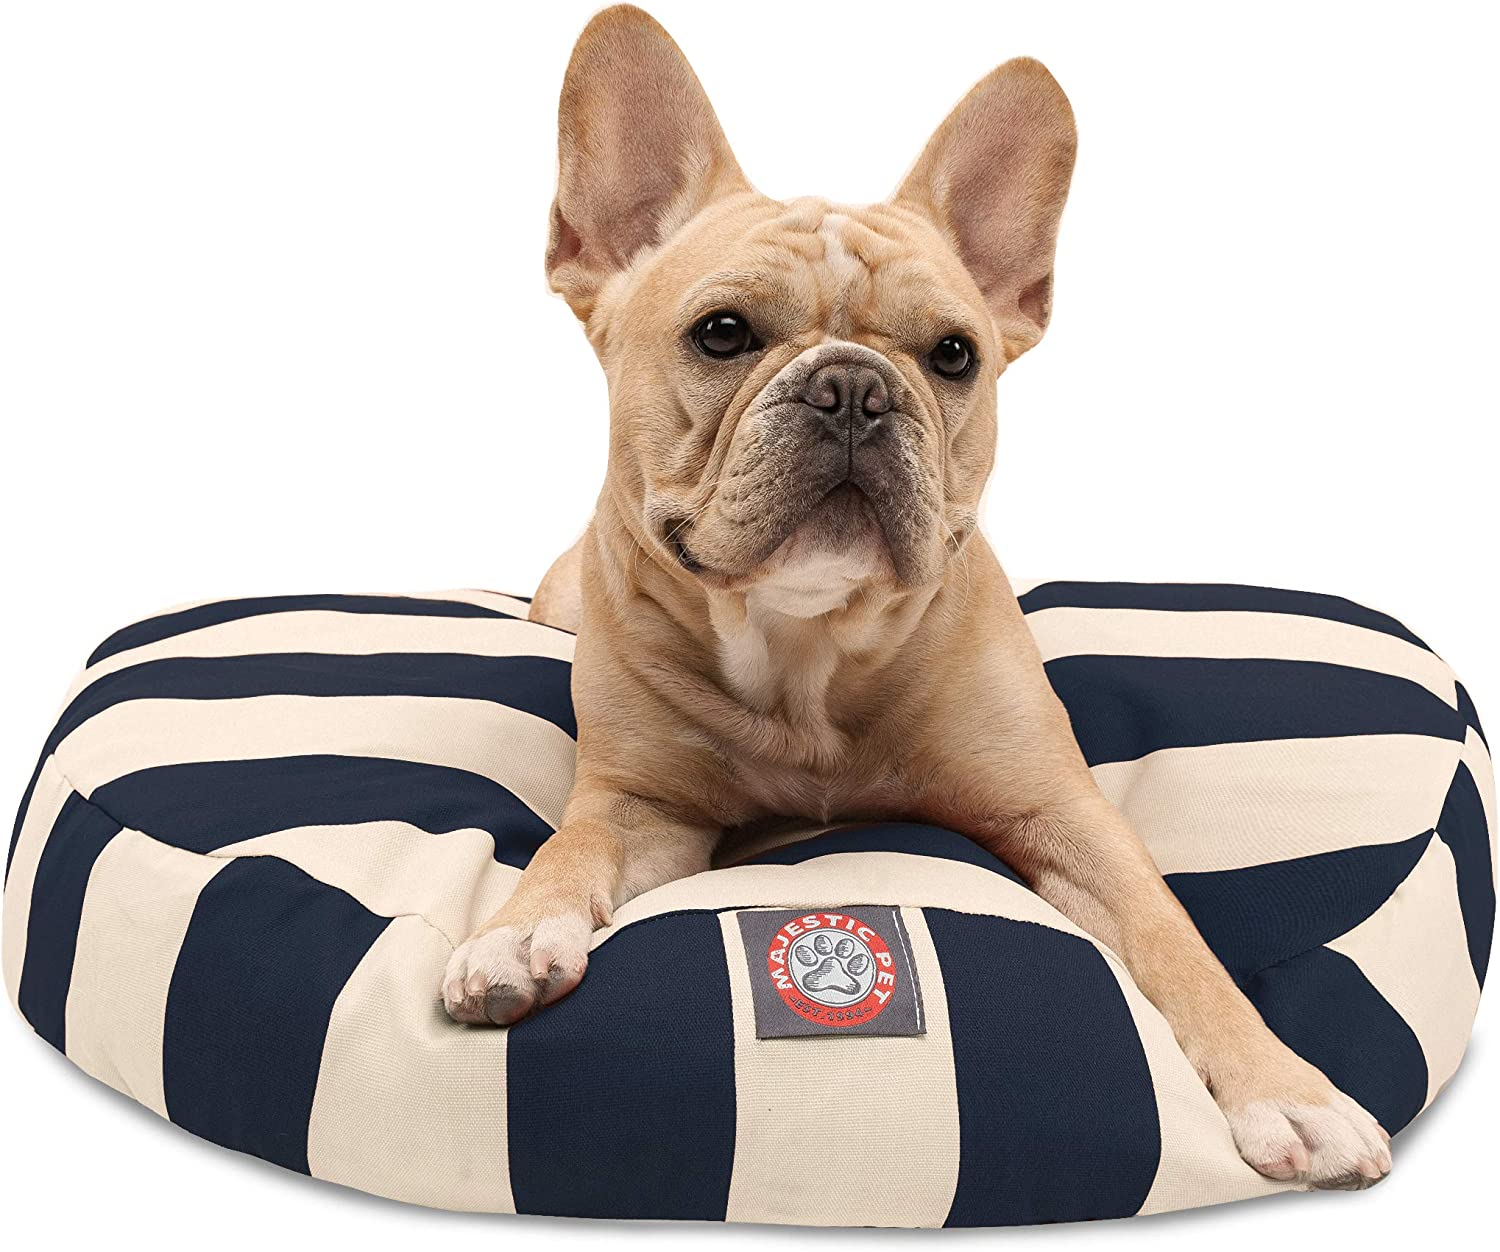 Navy Blue Vertical Stripe Many popular brands Small Round Bed Outdoor Indoor Dog Popular shop is the lowest price challenge Pet